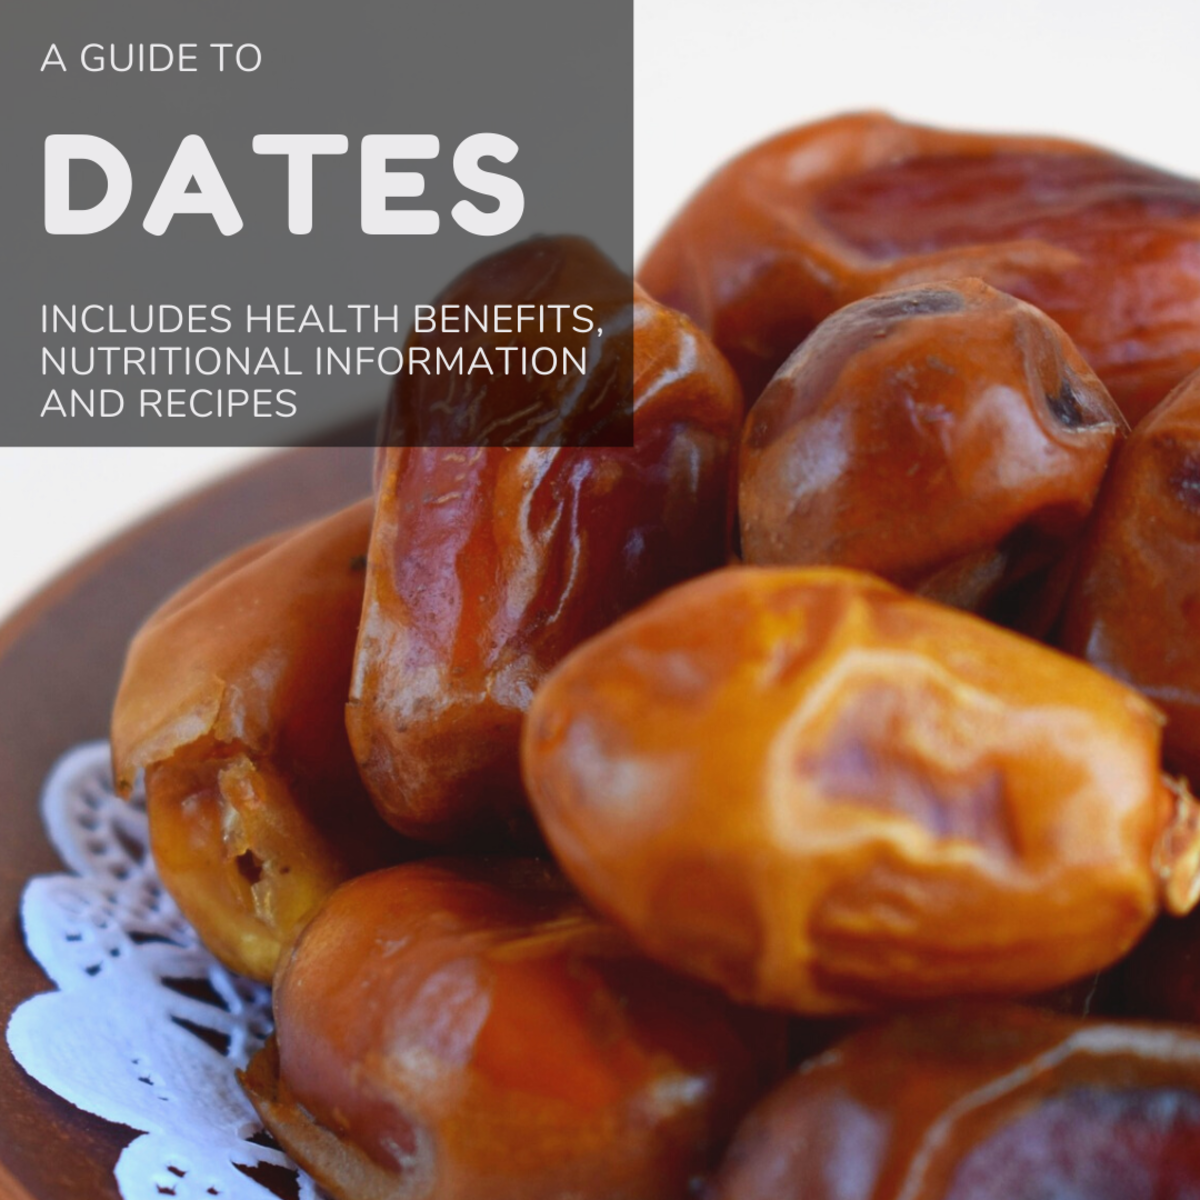 Dates are both sweet and nourishing!